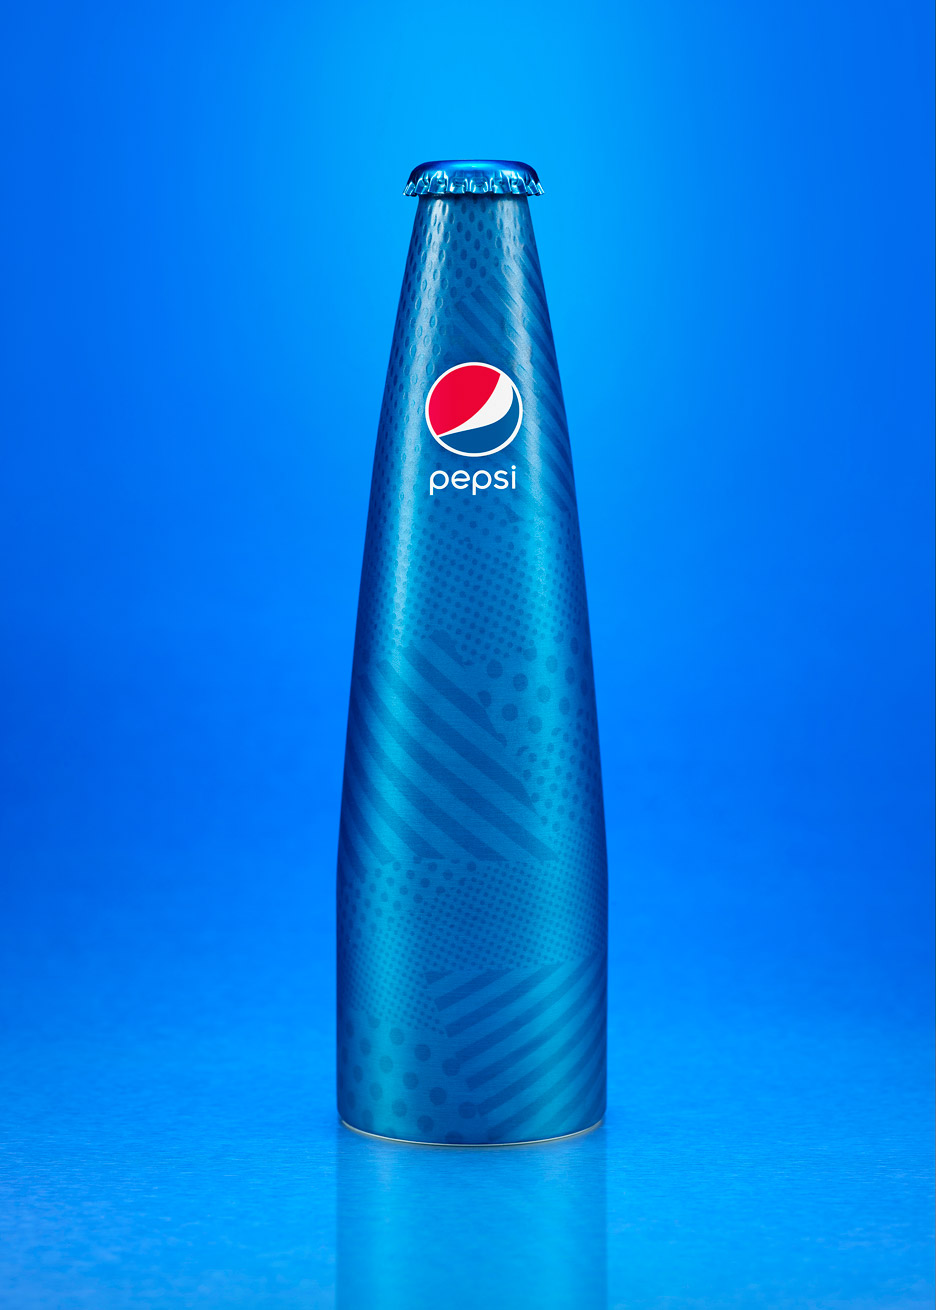 new innovative product of pepsi Pepsi report 18 pages pepsi report  by new products and innovative ideas consumers can easily be  new product category pepsi which is mainly a company of soft drinks after establishing a brand in pakistan pepsi came.